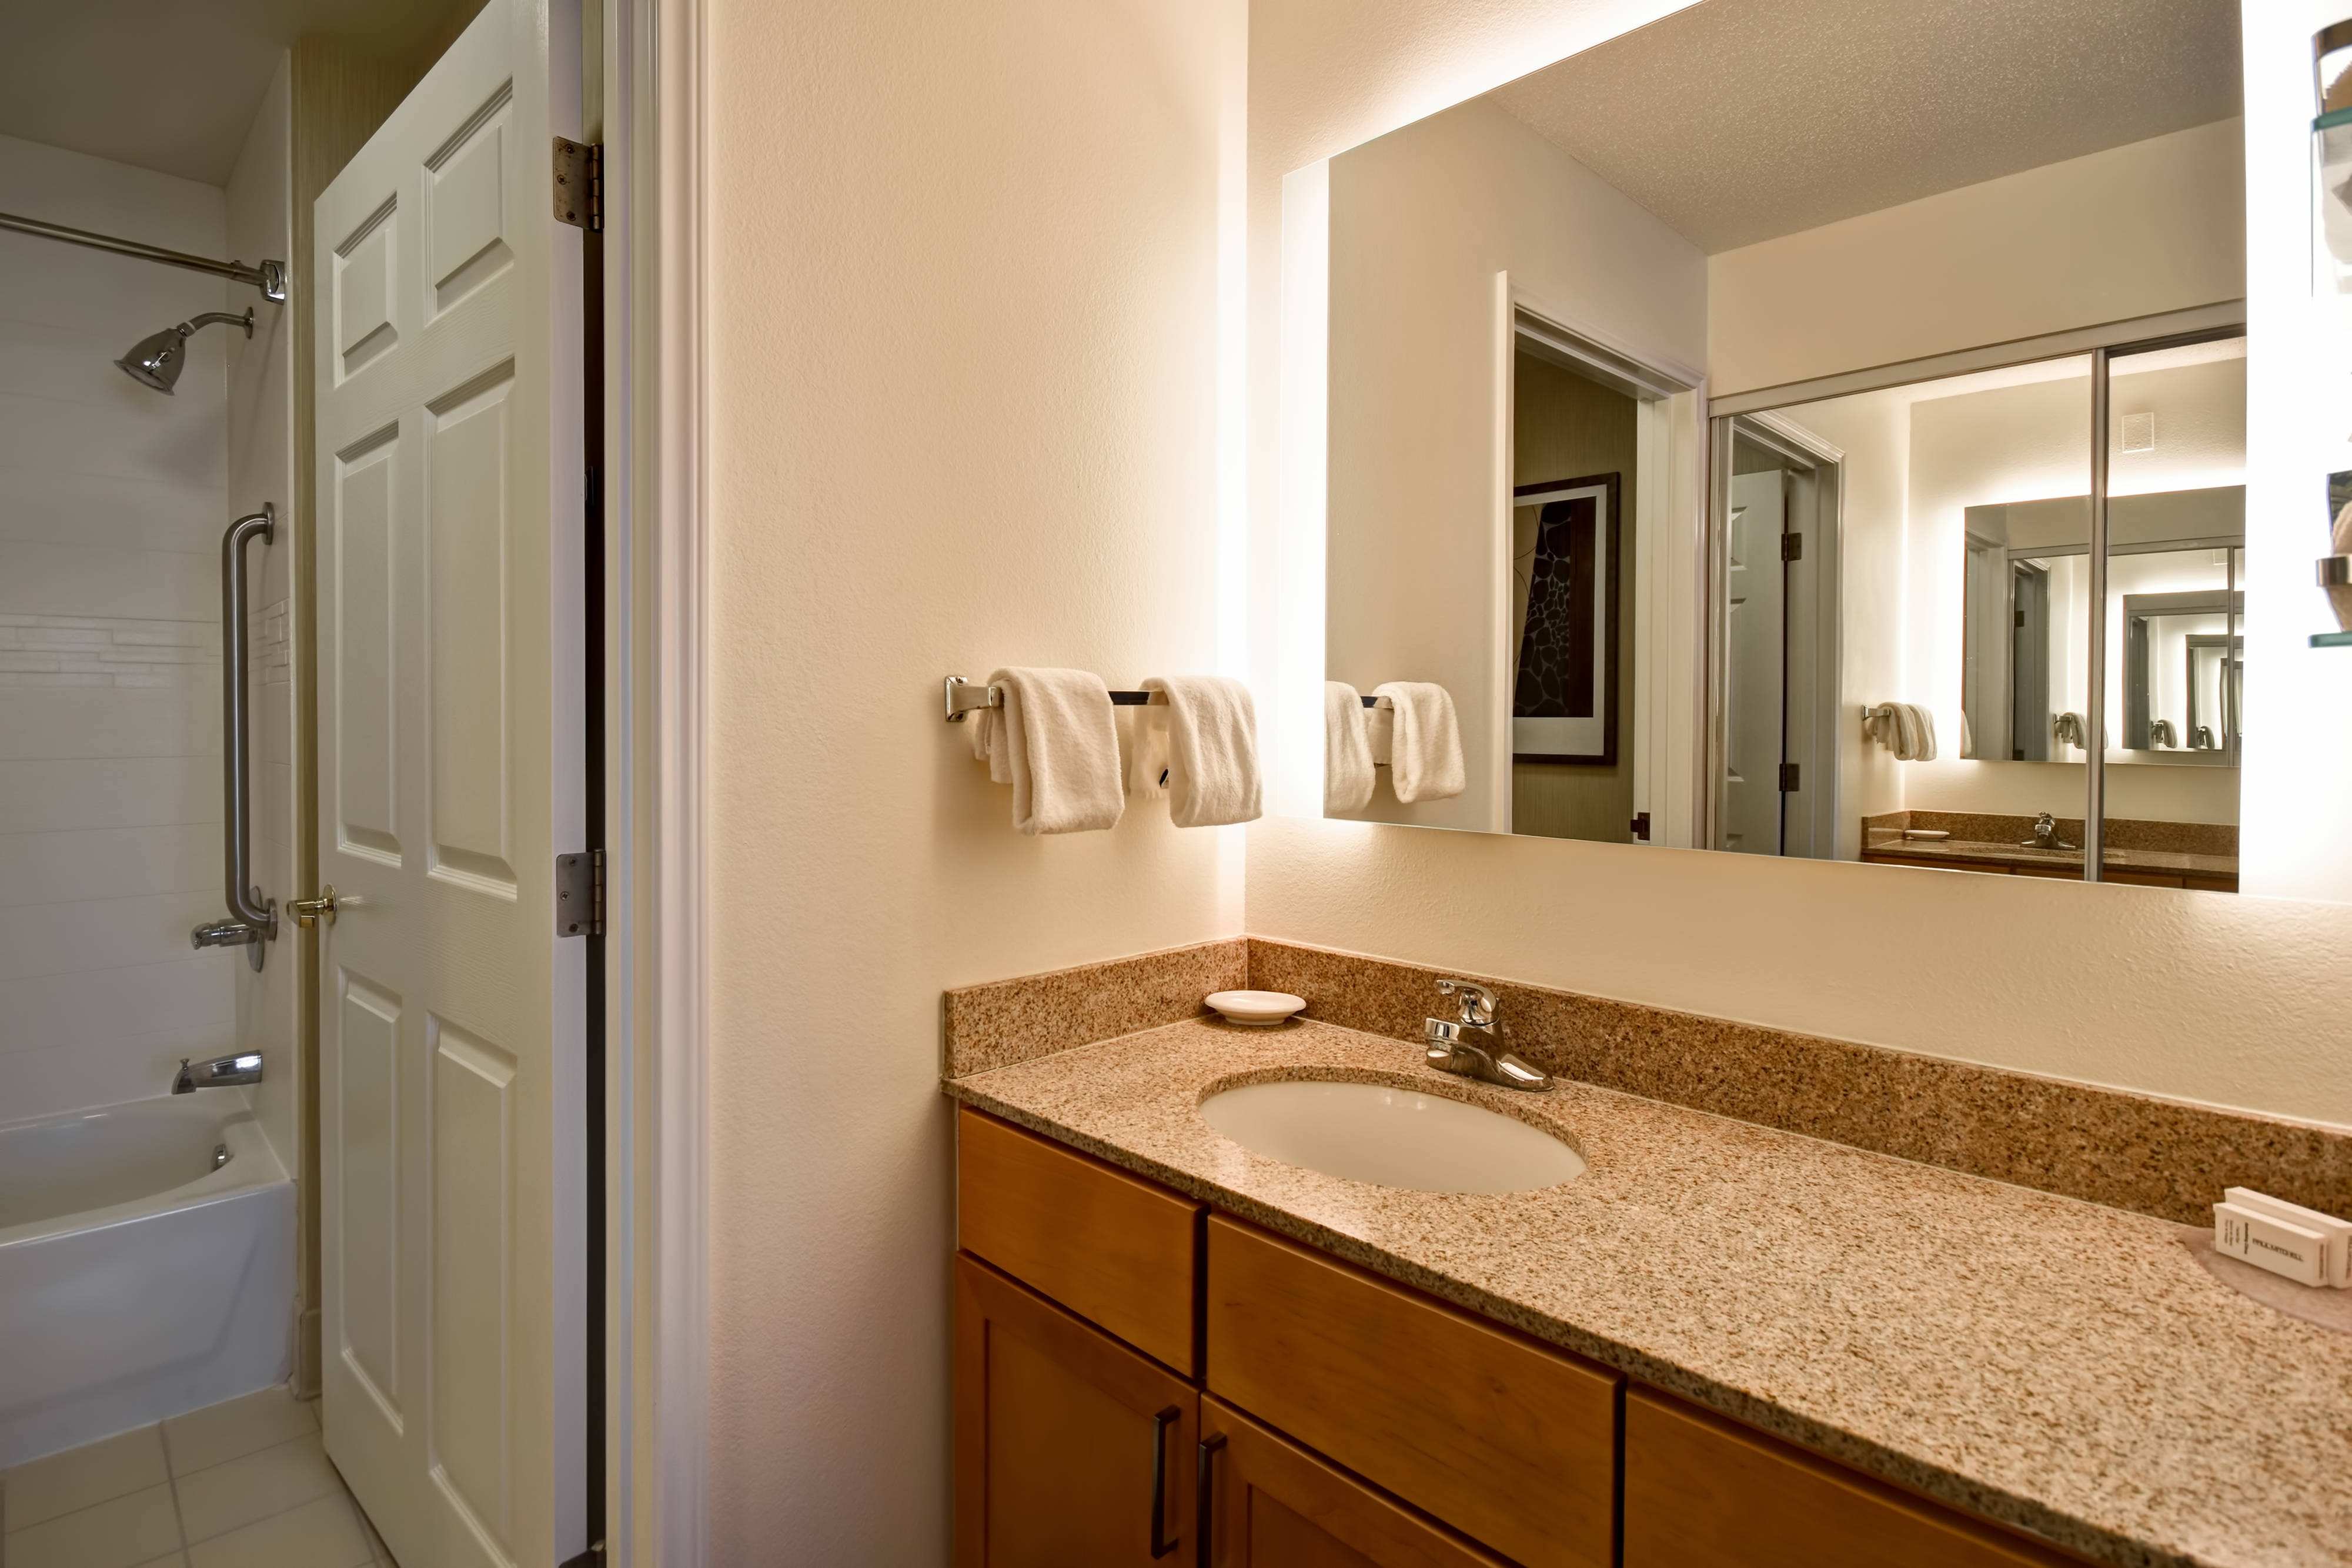 Guest Bathroom - Tub&Shower Combination